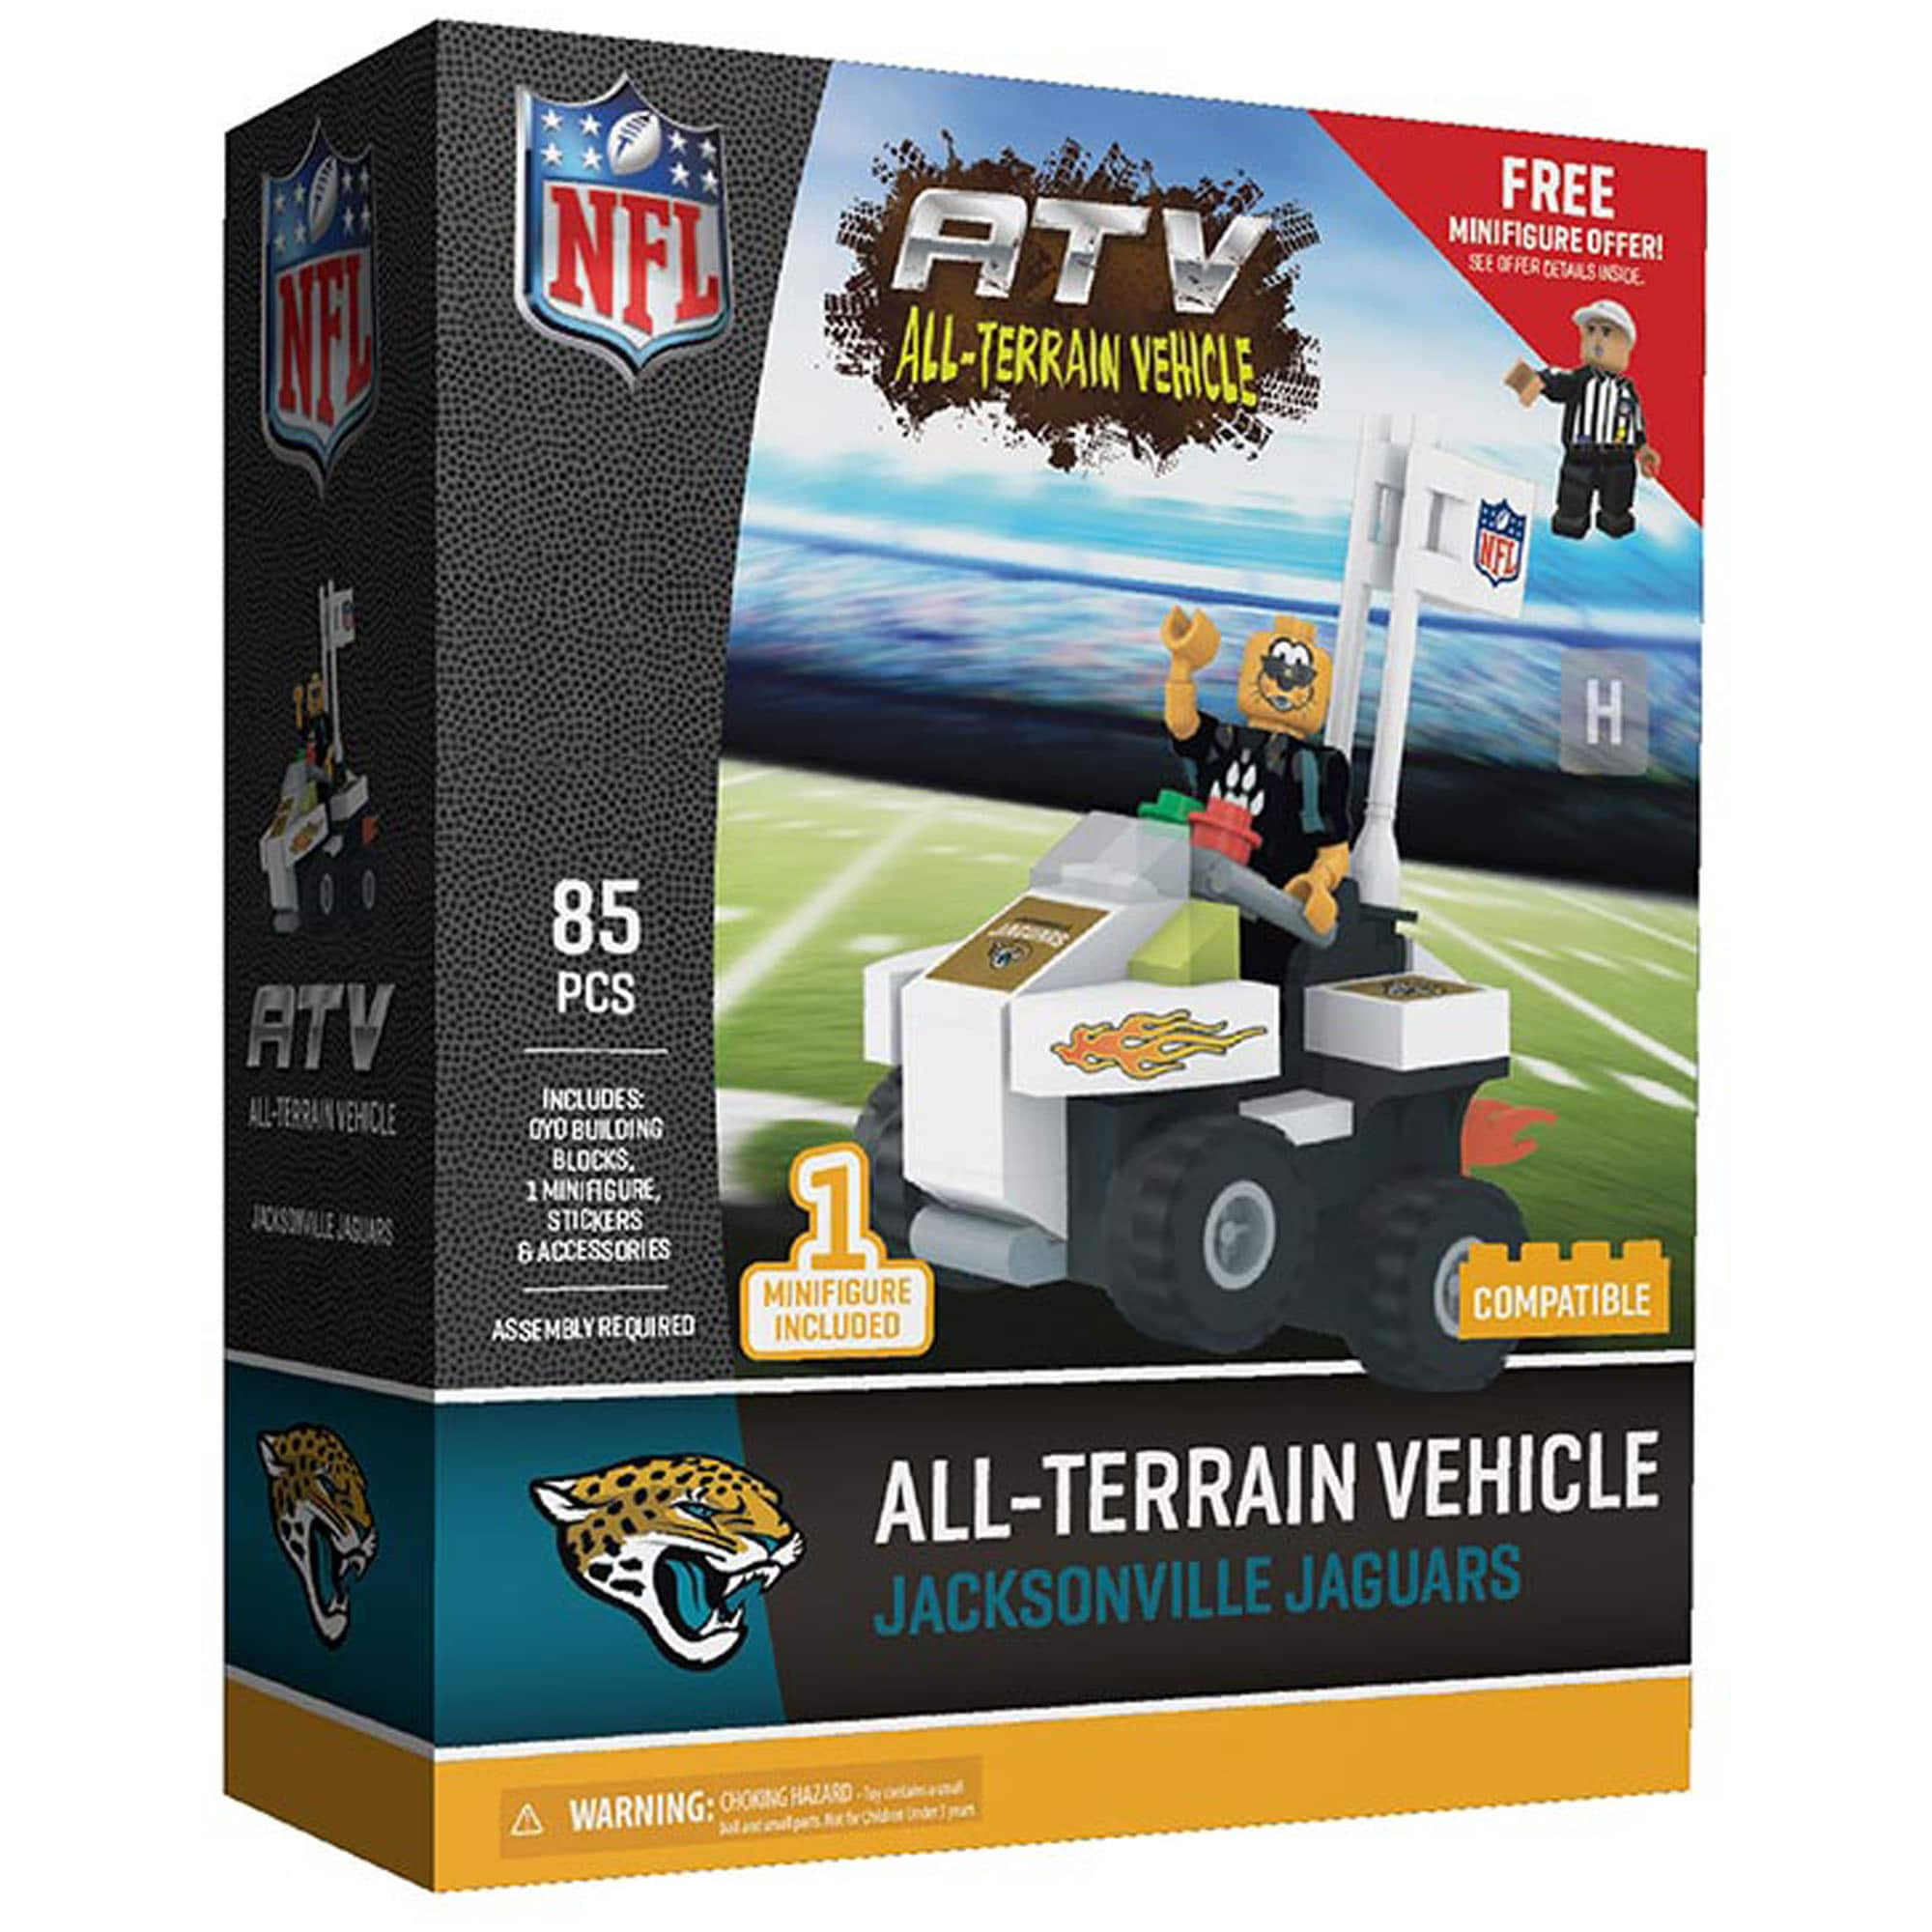 Jacksonville Jaguars OYO Sports Mascot 4-Wheel ATV Minifigure Set